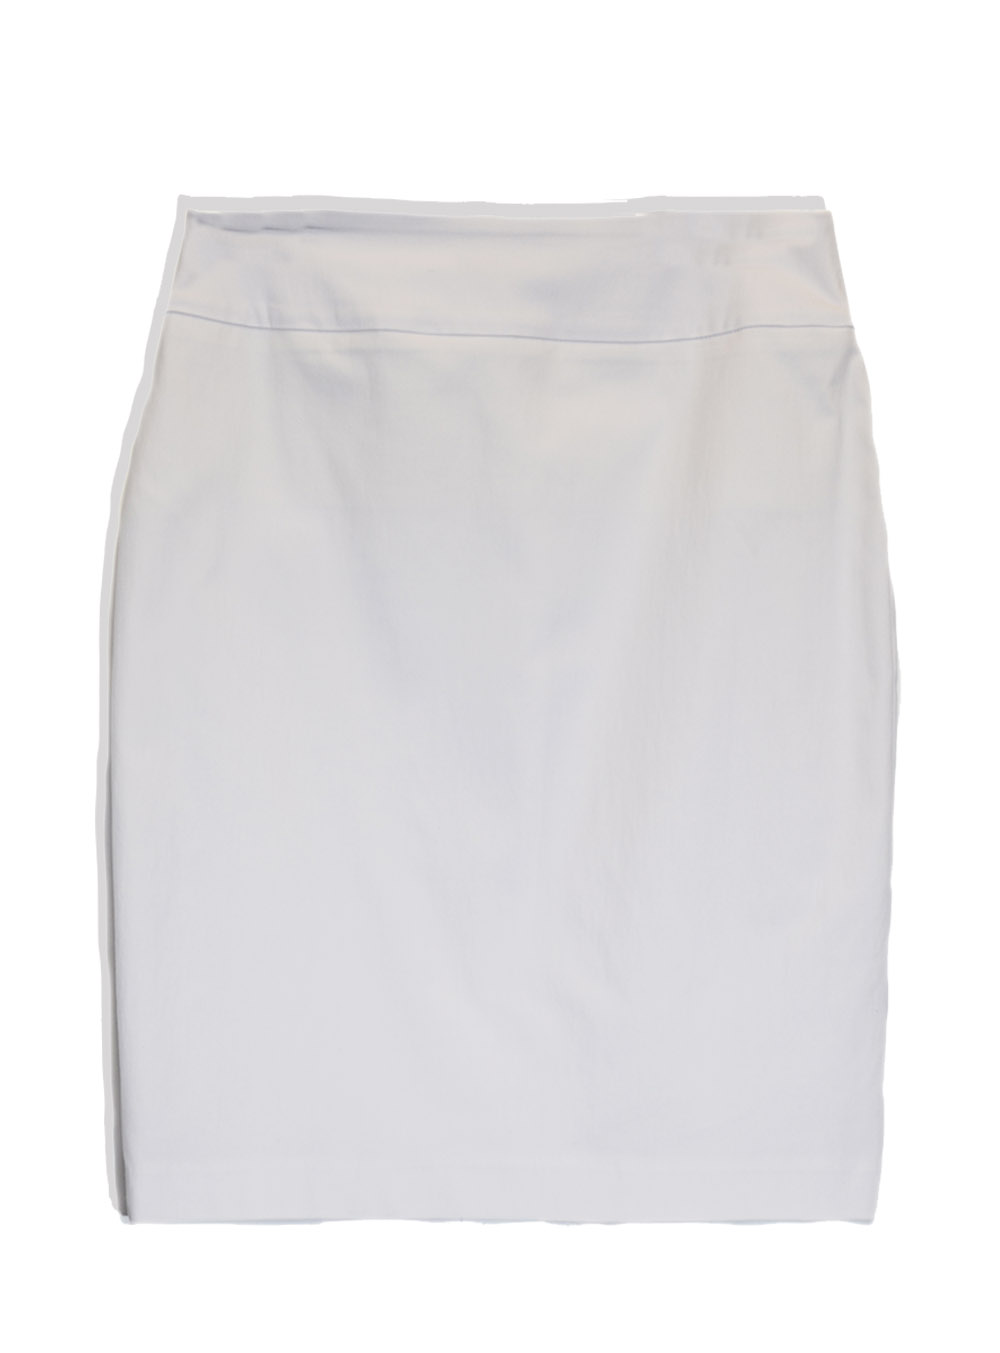 skirt white cotton.jpg